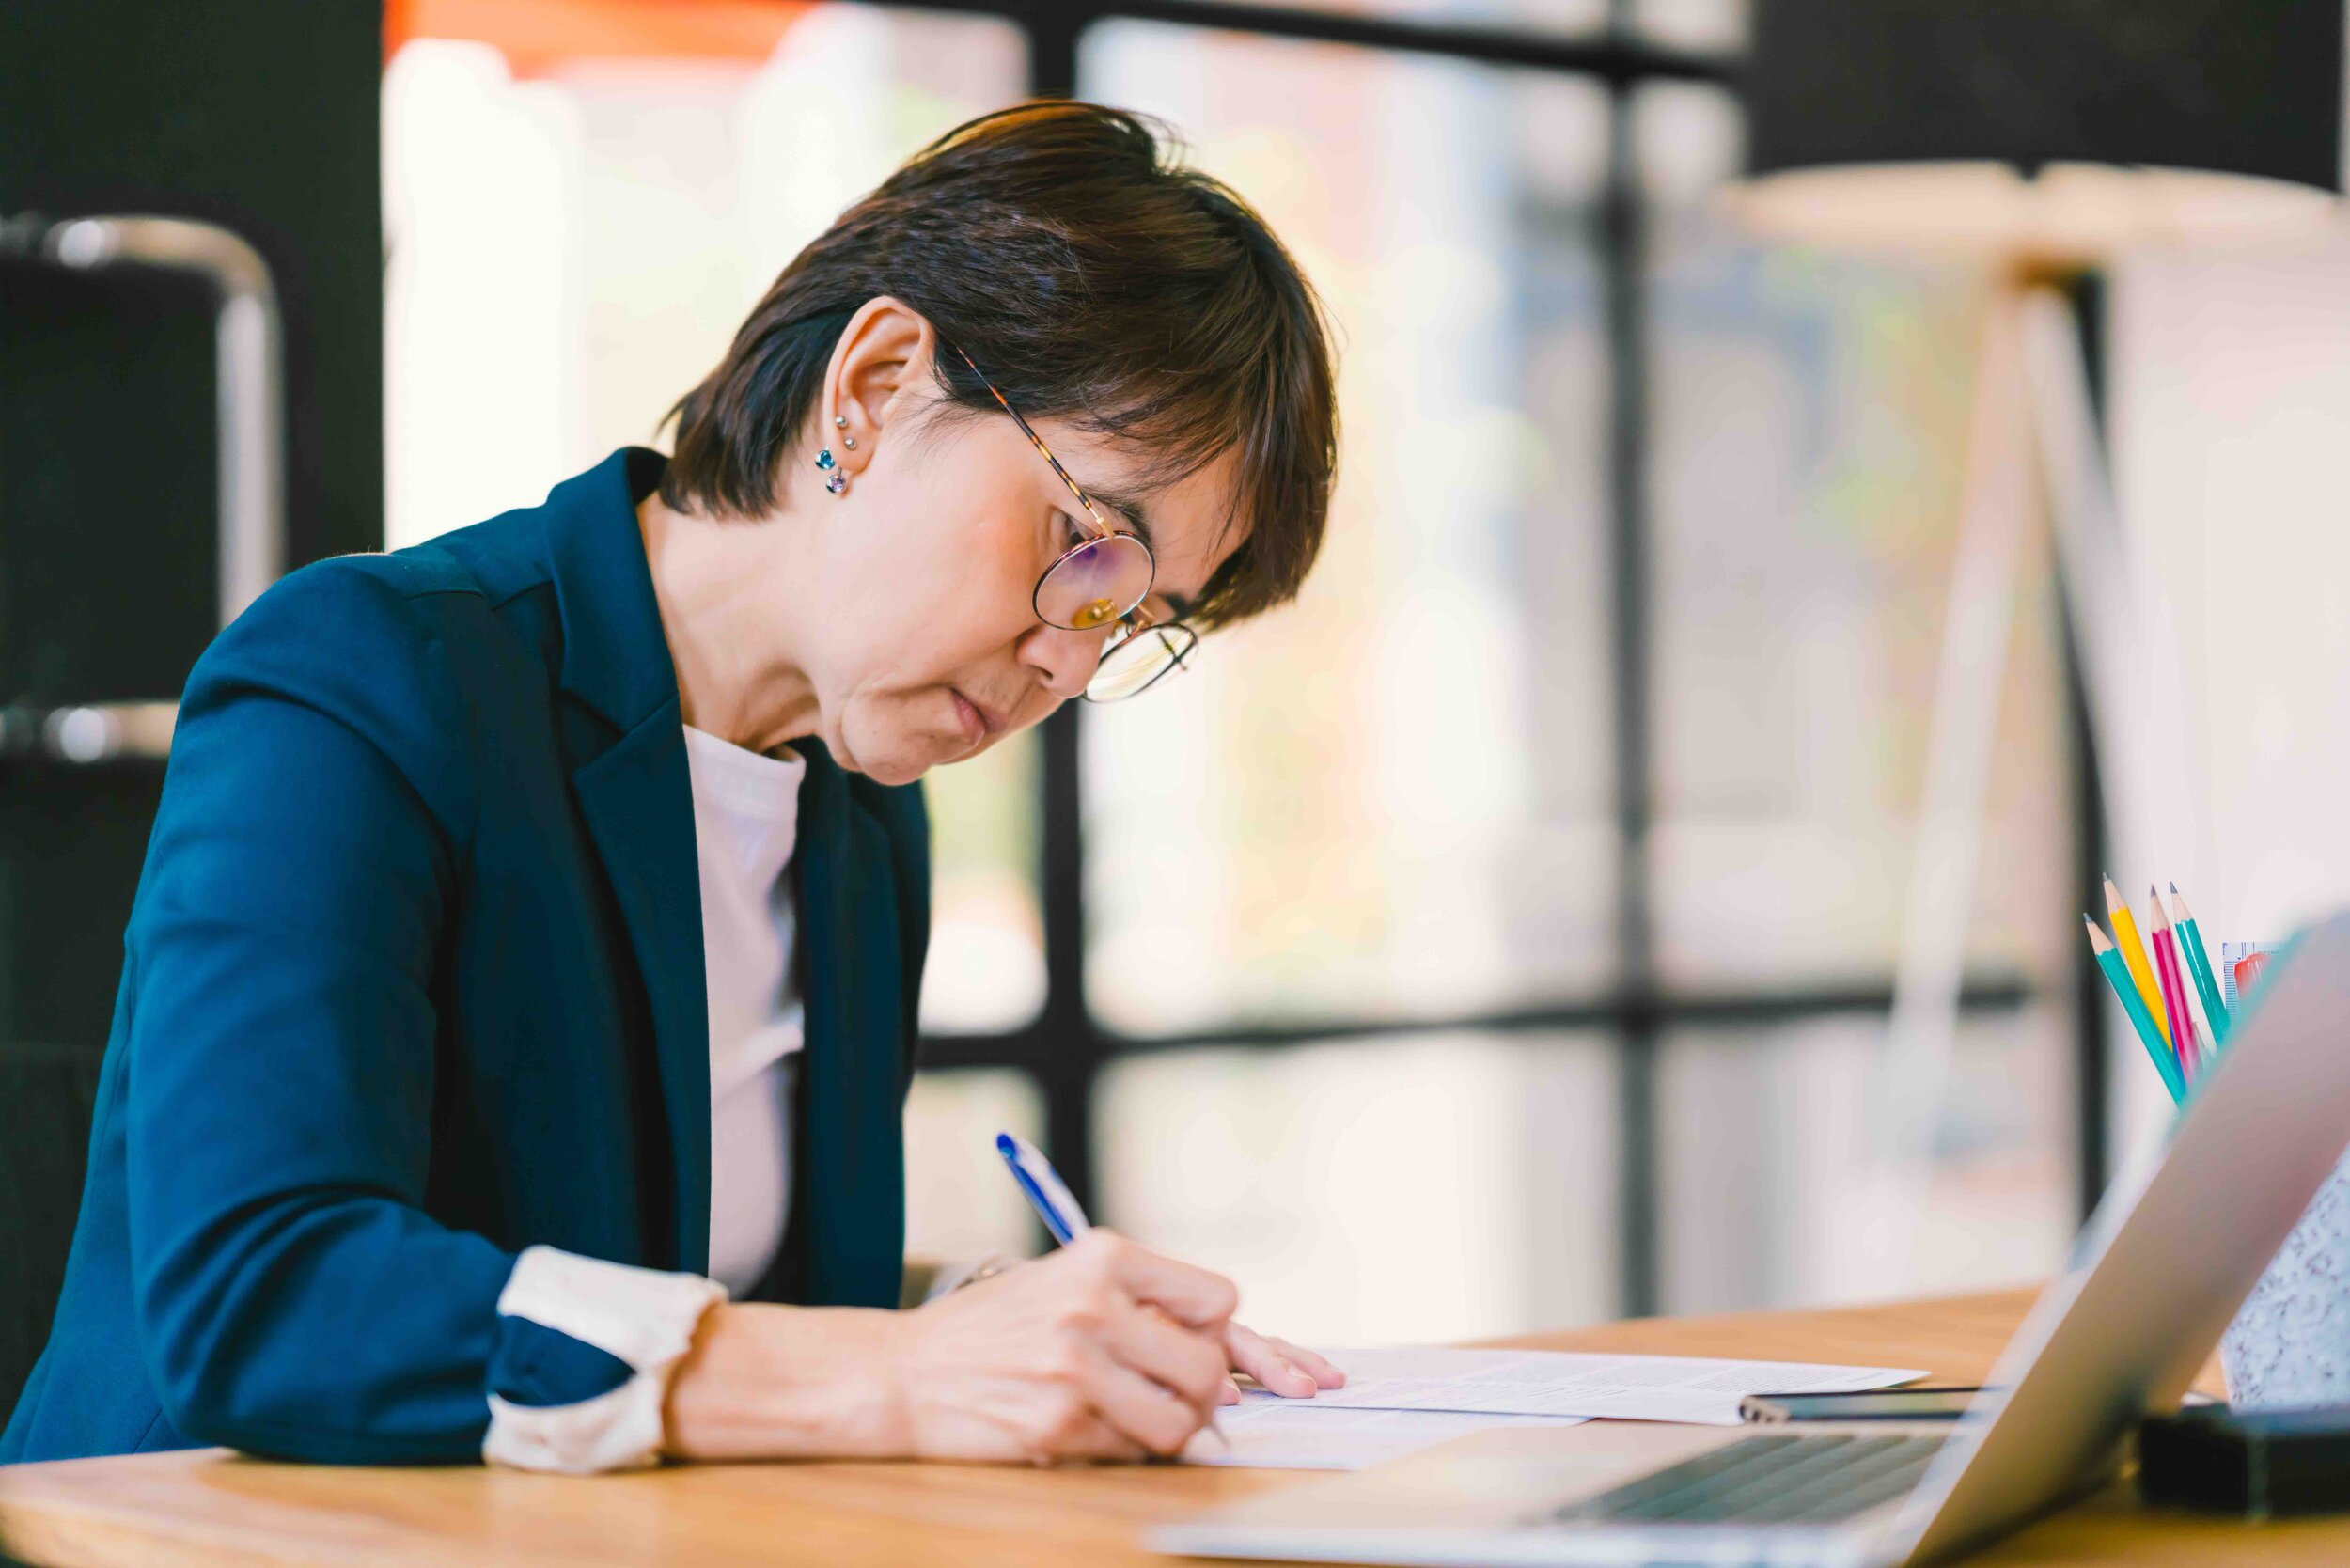 Canva - Beautiful middle age Asian woman working on paperwork in modern contemporary office, with laptop computer. Business owner, entrepreneur, executive manager, or employee office worker concept.jpg